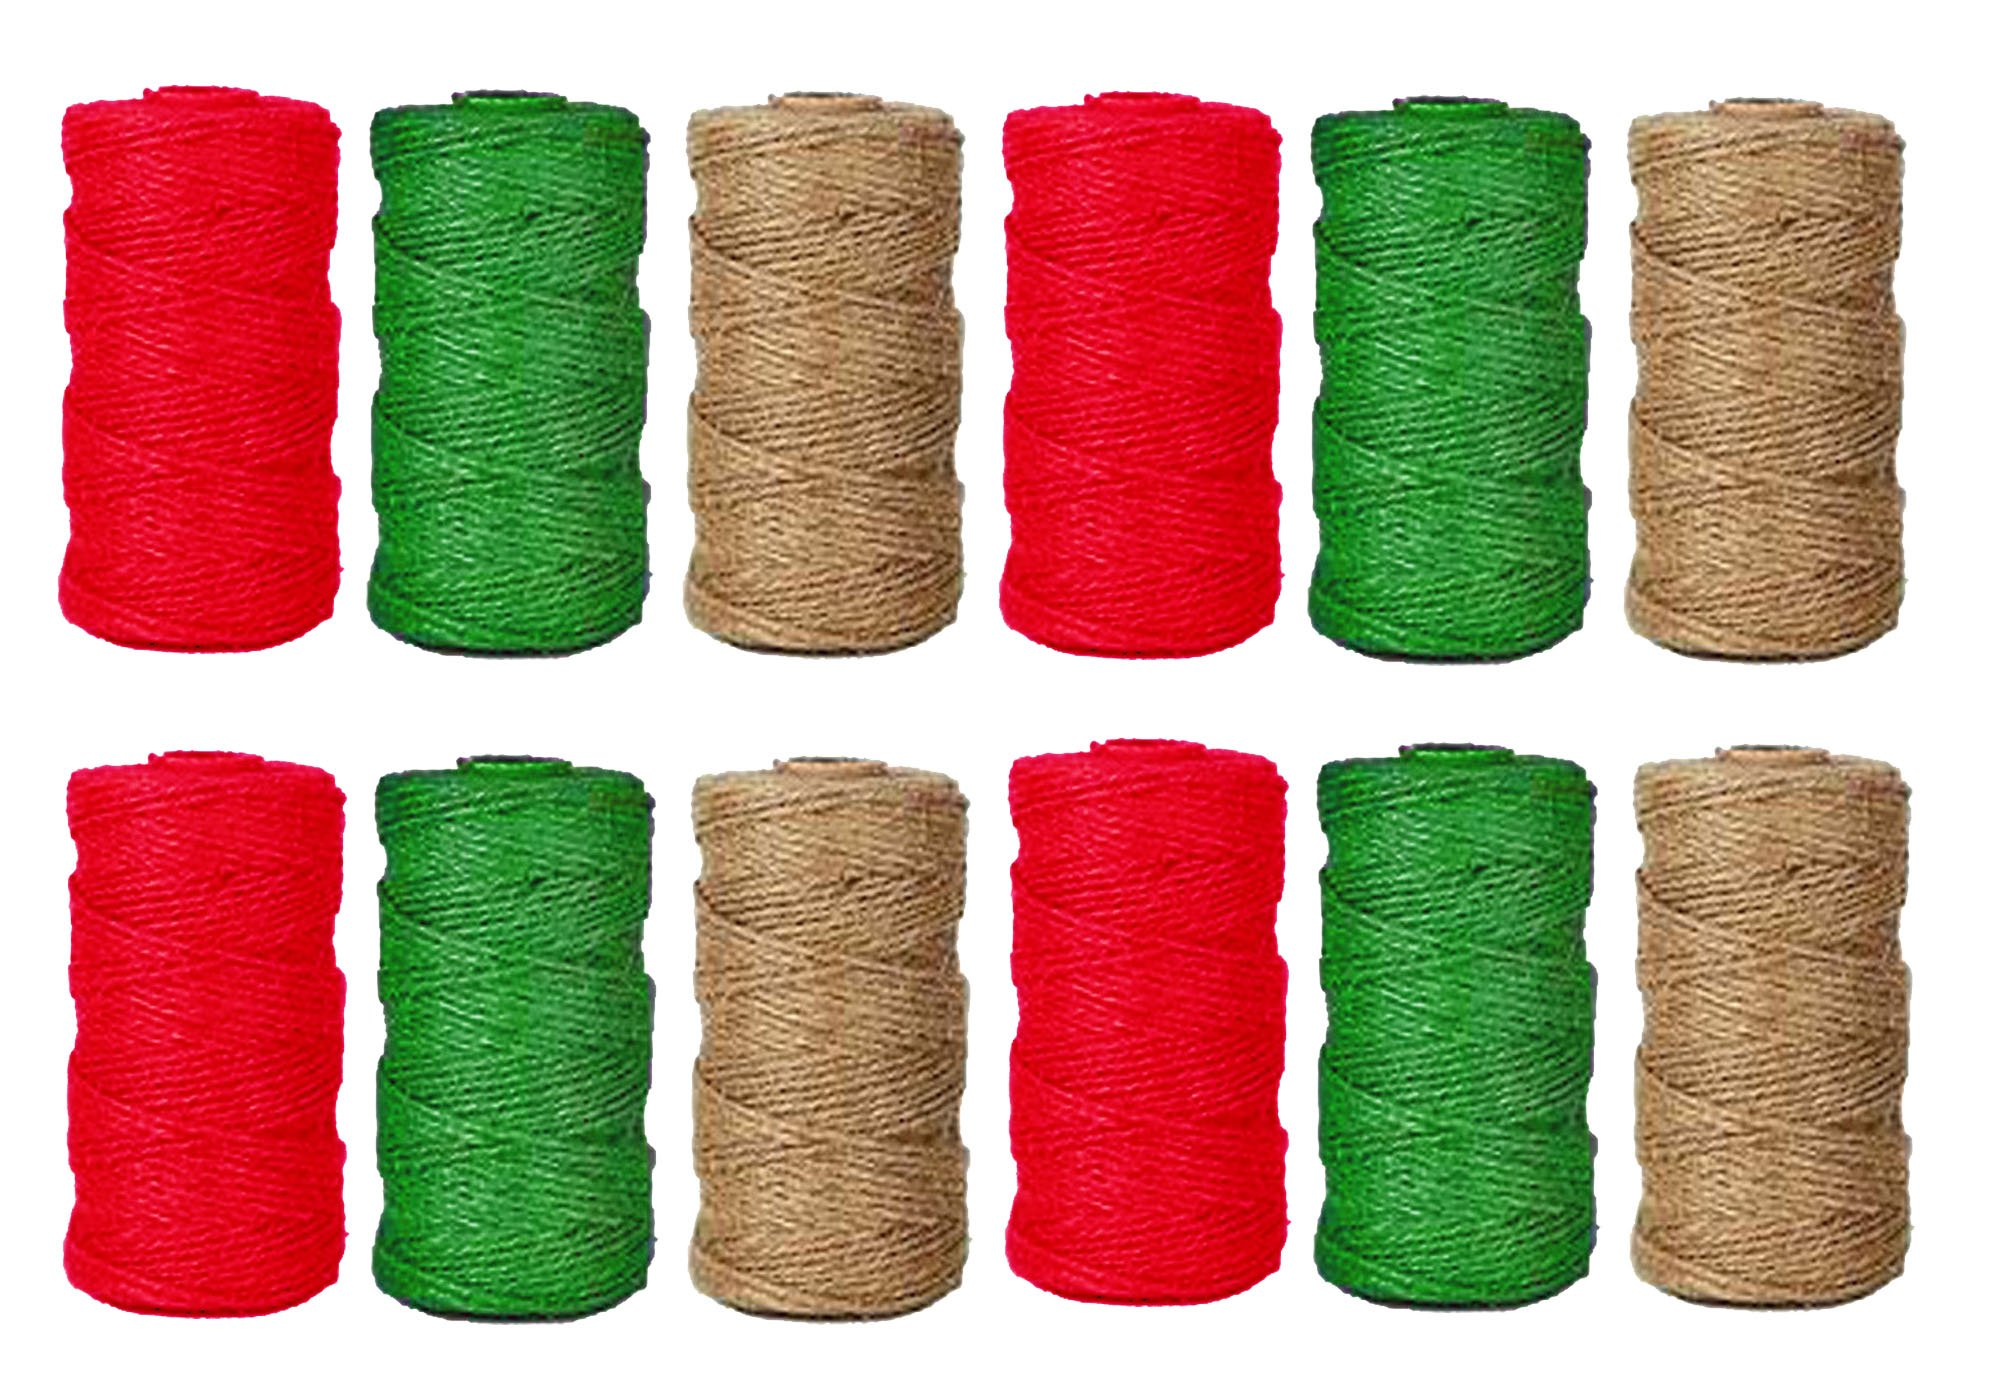 Set of 12 Black Duck Brand Christmas Holiday Rope Jute Twine Rolls – 180 Ft Each – Red. Green, Natural (12)